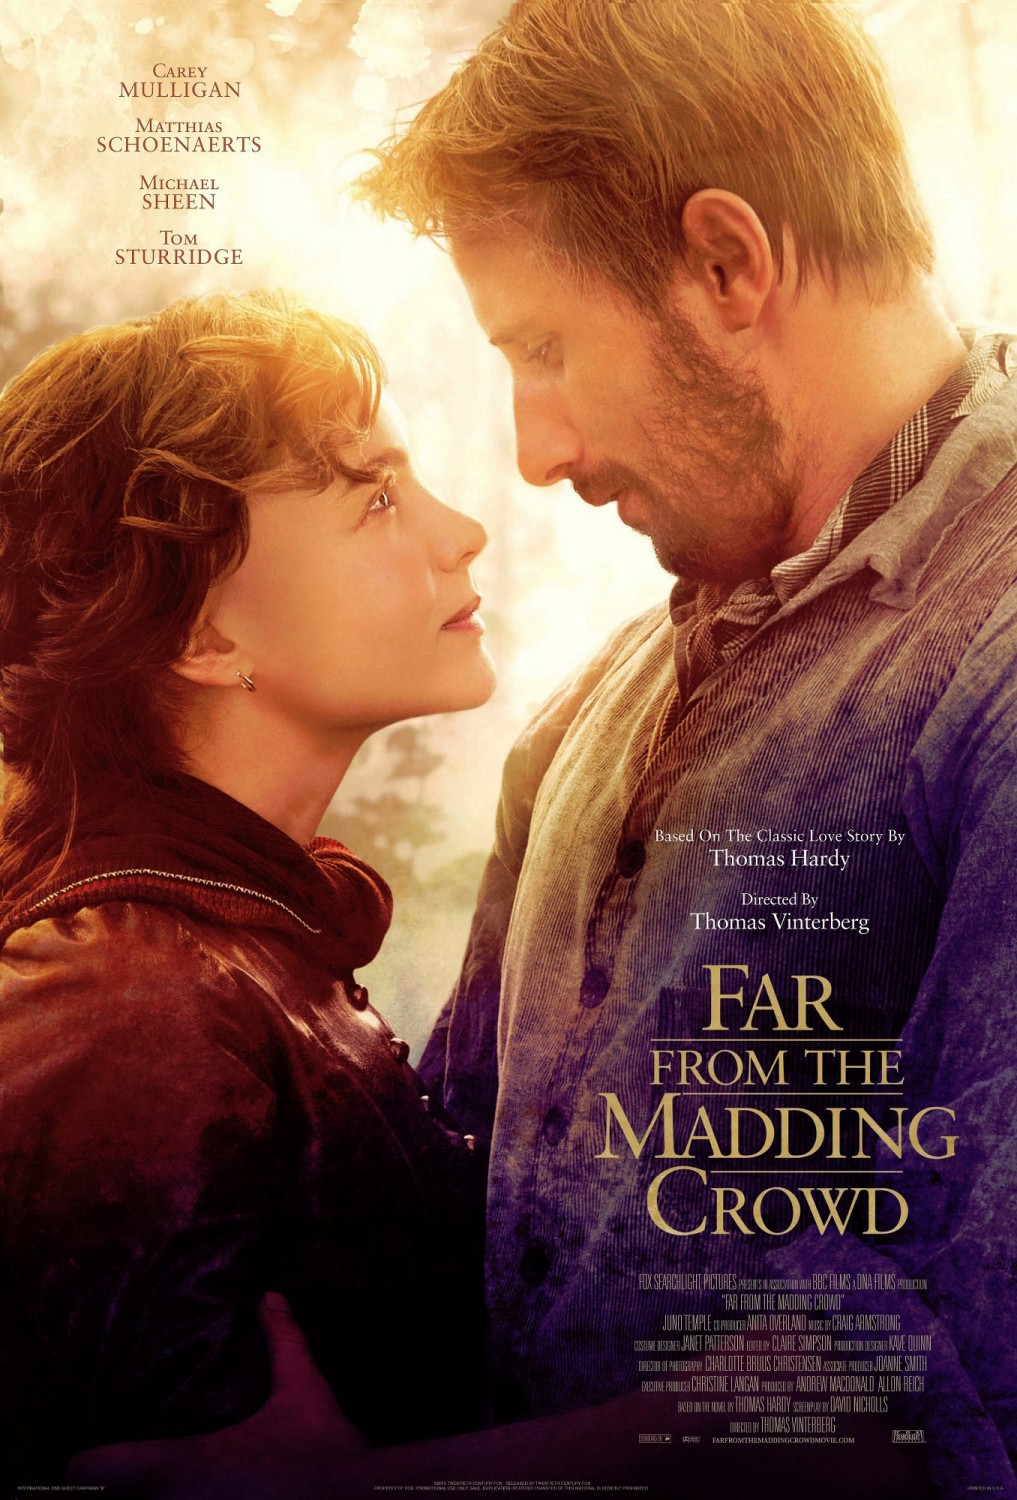 Carol Libro [review] Far From The Madding Crowd